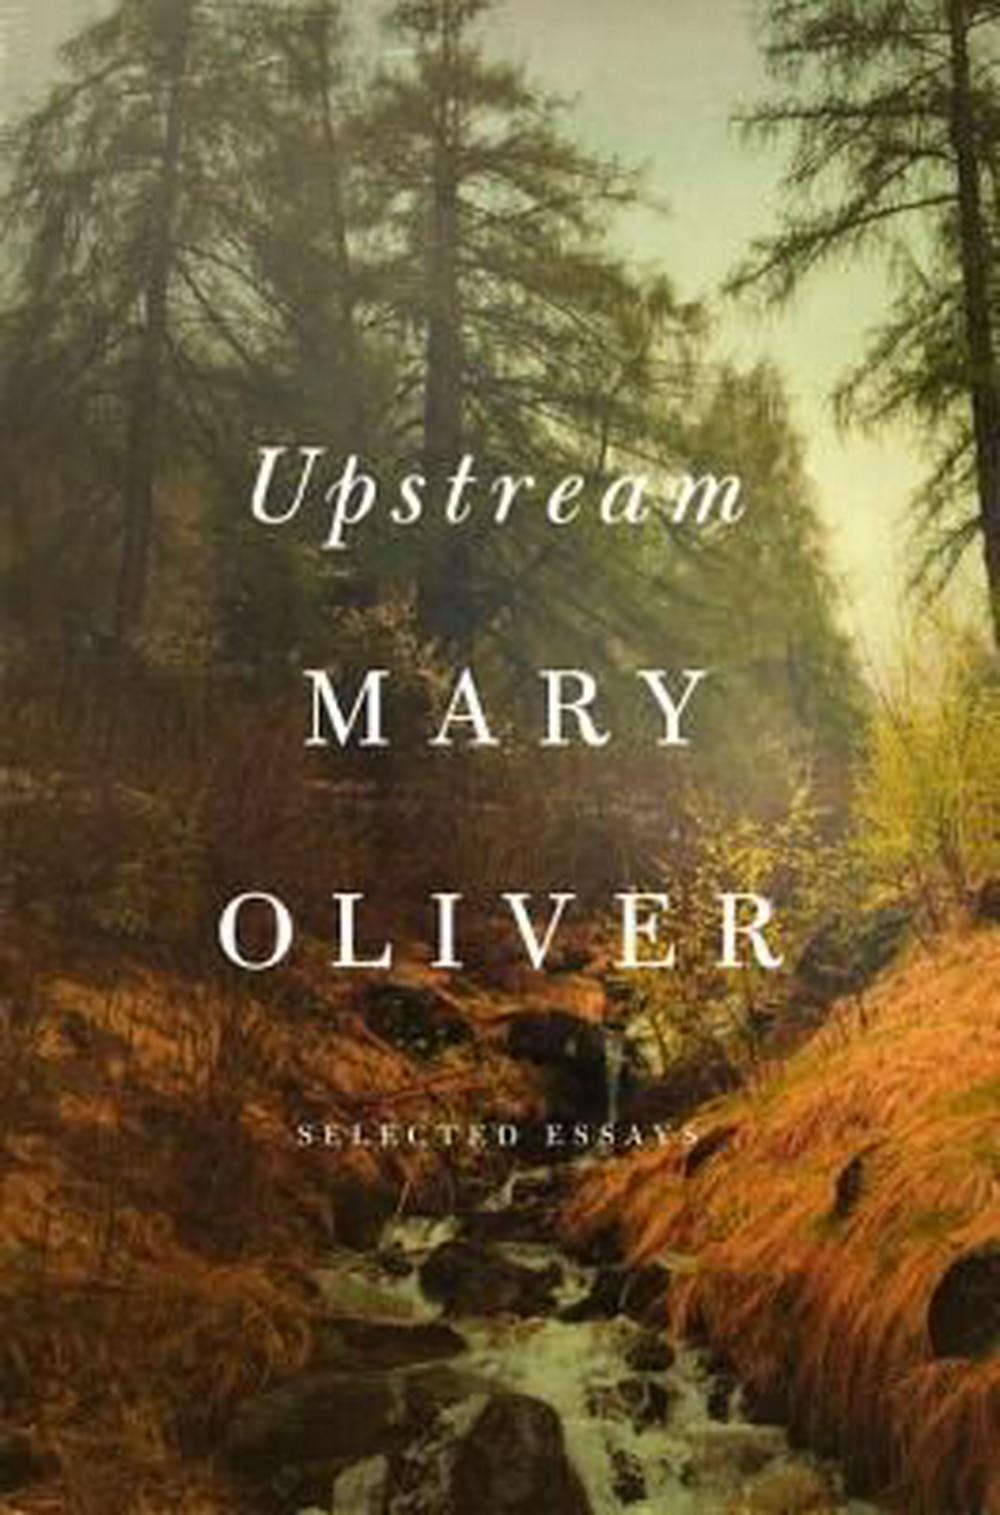 UpstreamEssays and Poems by Mary Oliver, ISBN: 9781594206702